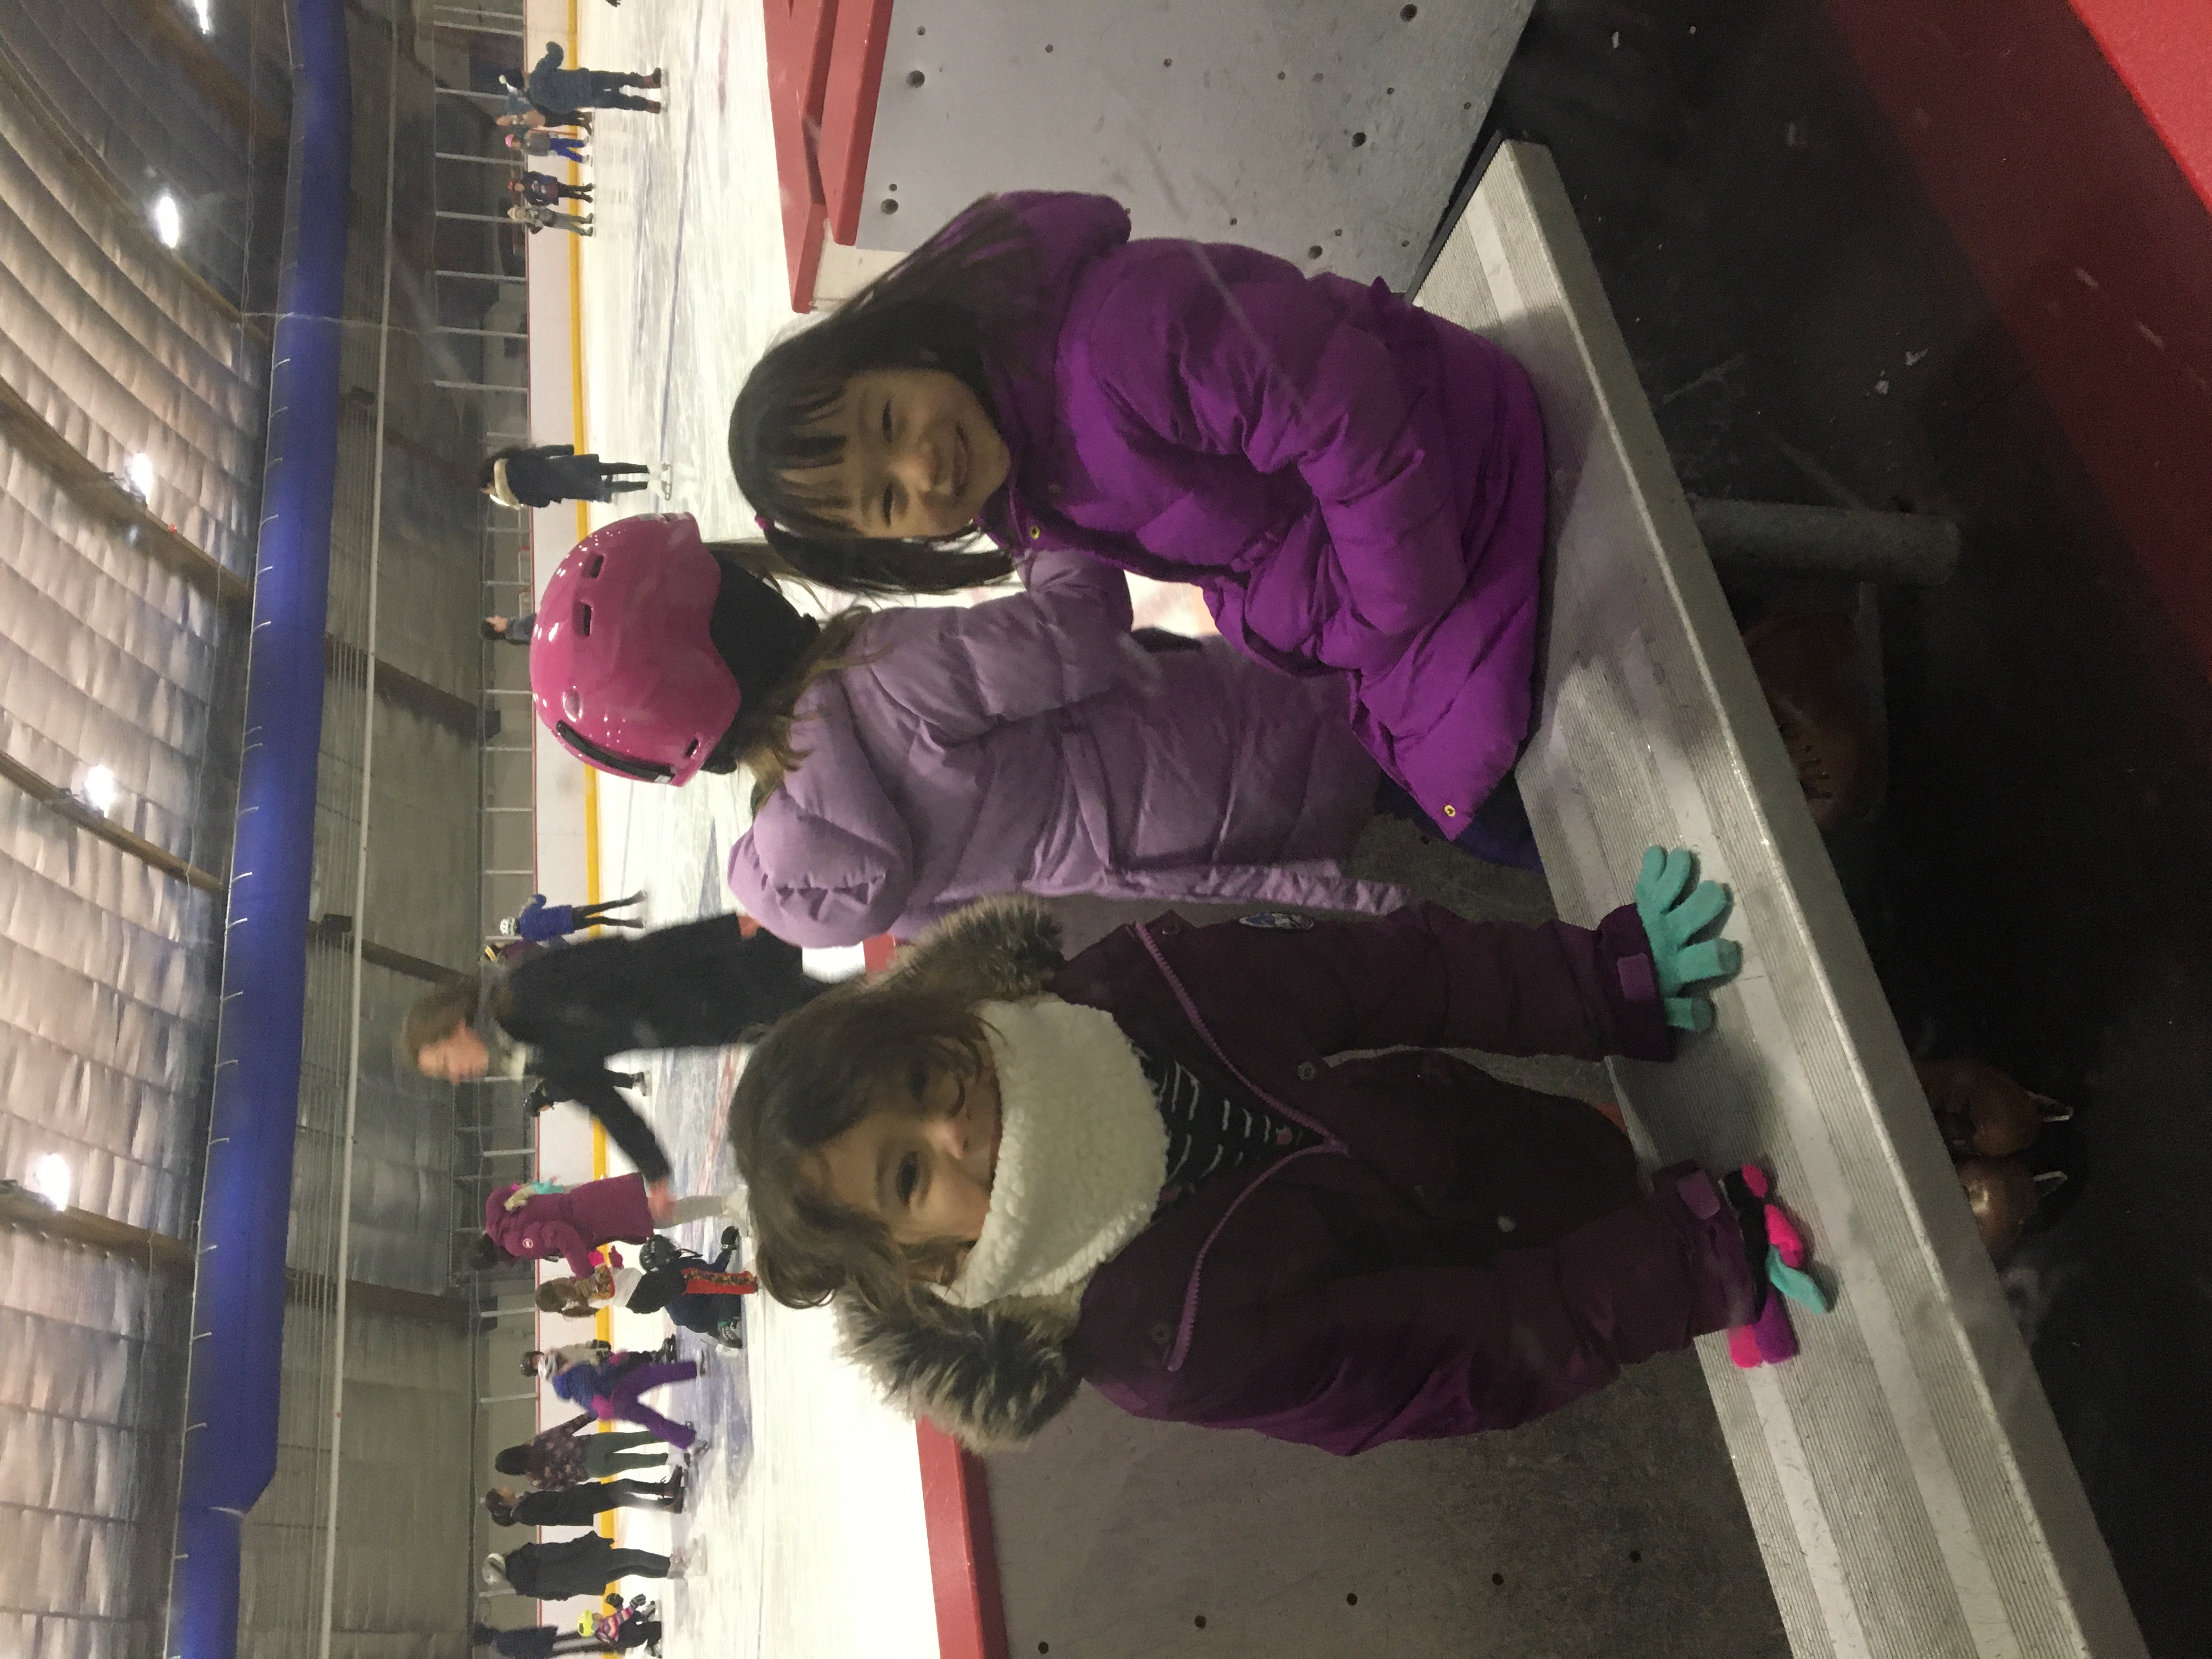 Ice skating at Daly Rink